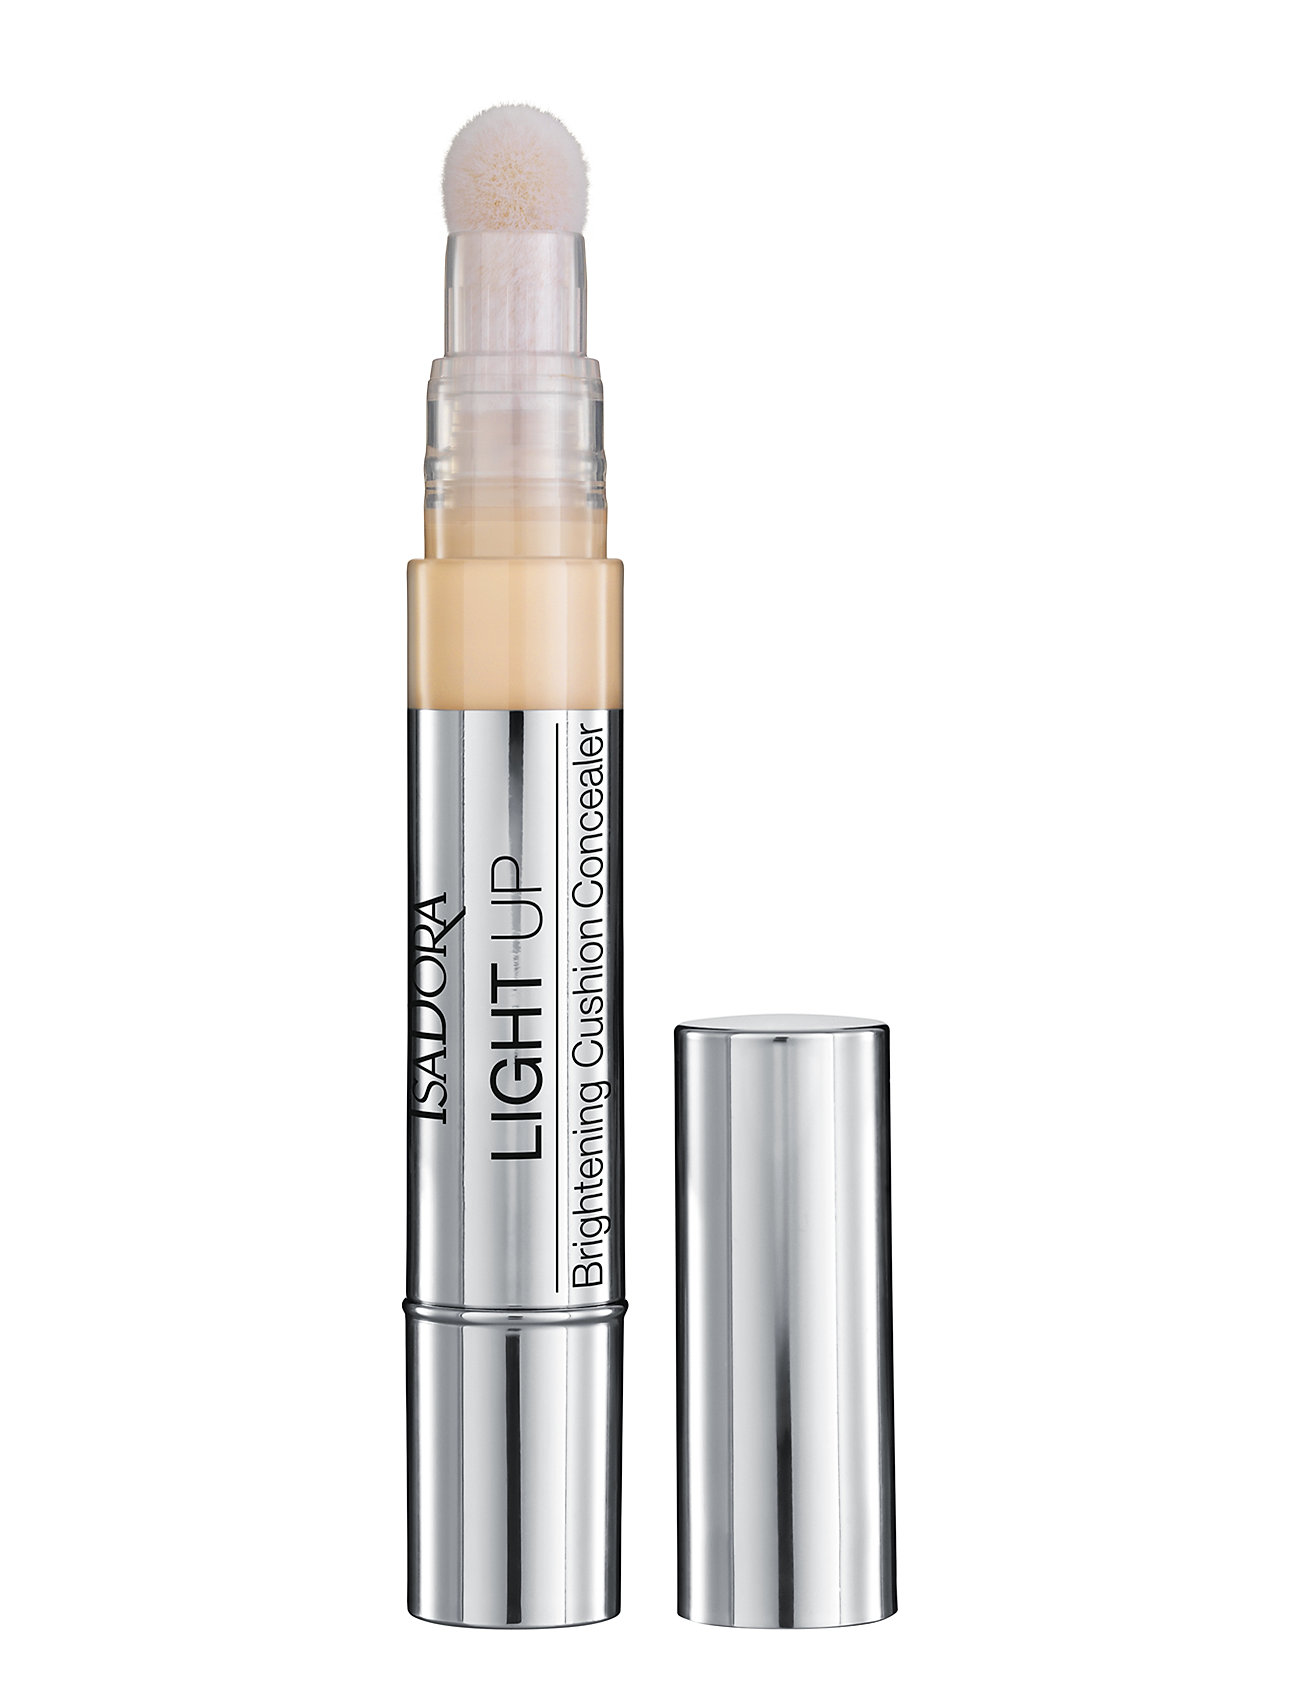 Image of Light Up Concealer 07 Toffee Light Up Concealer Concealer Makeup Isadora (3145472427)